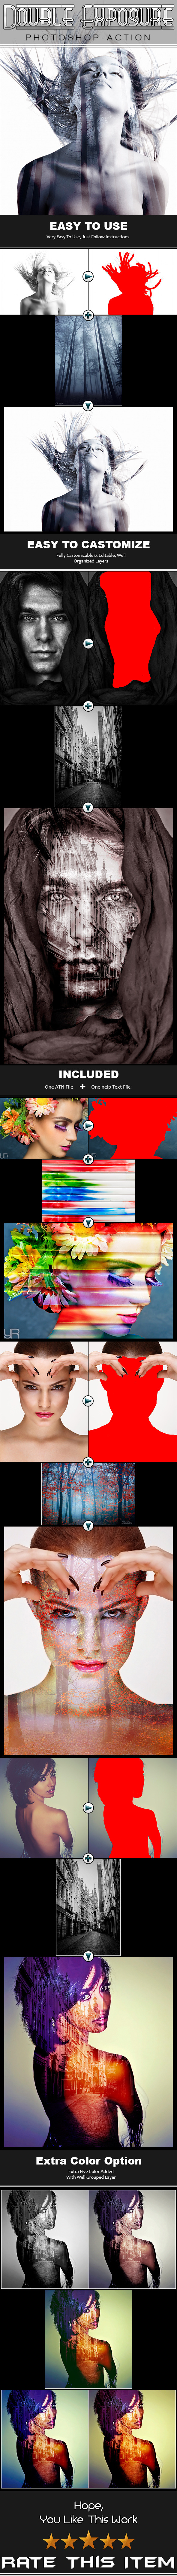 GraphicRiver Double Exposure PS Action 11620317